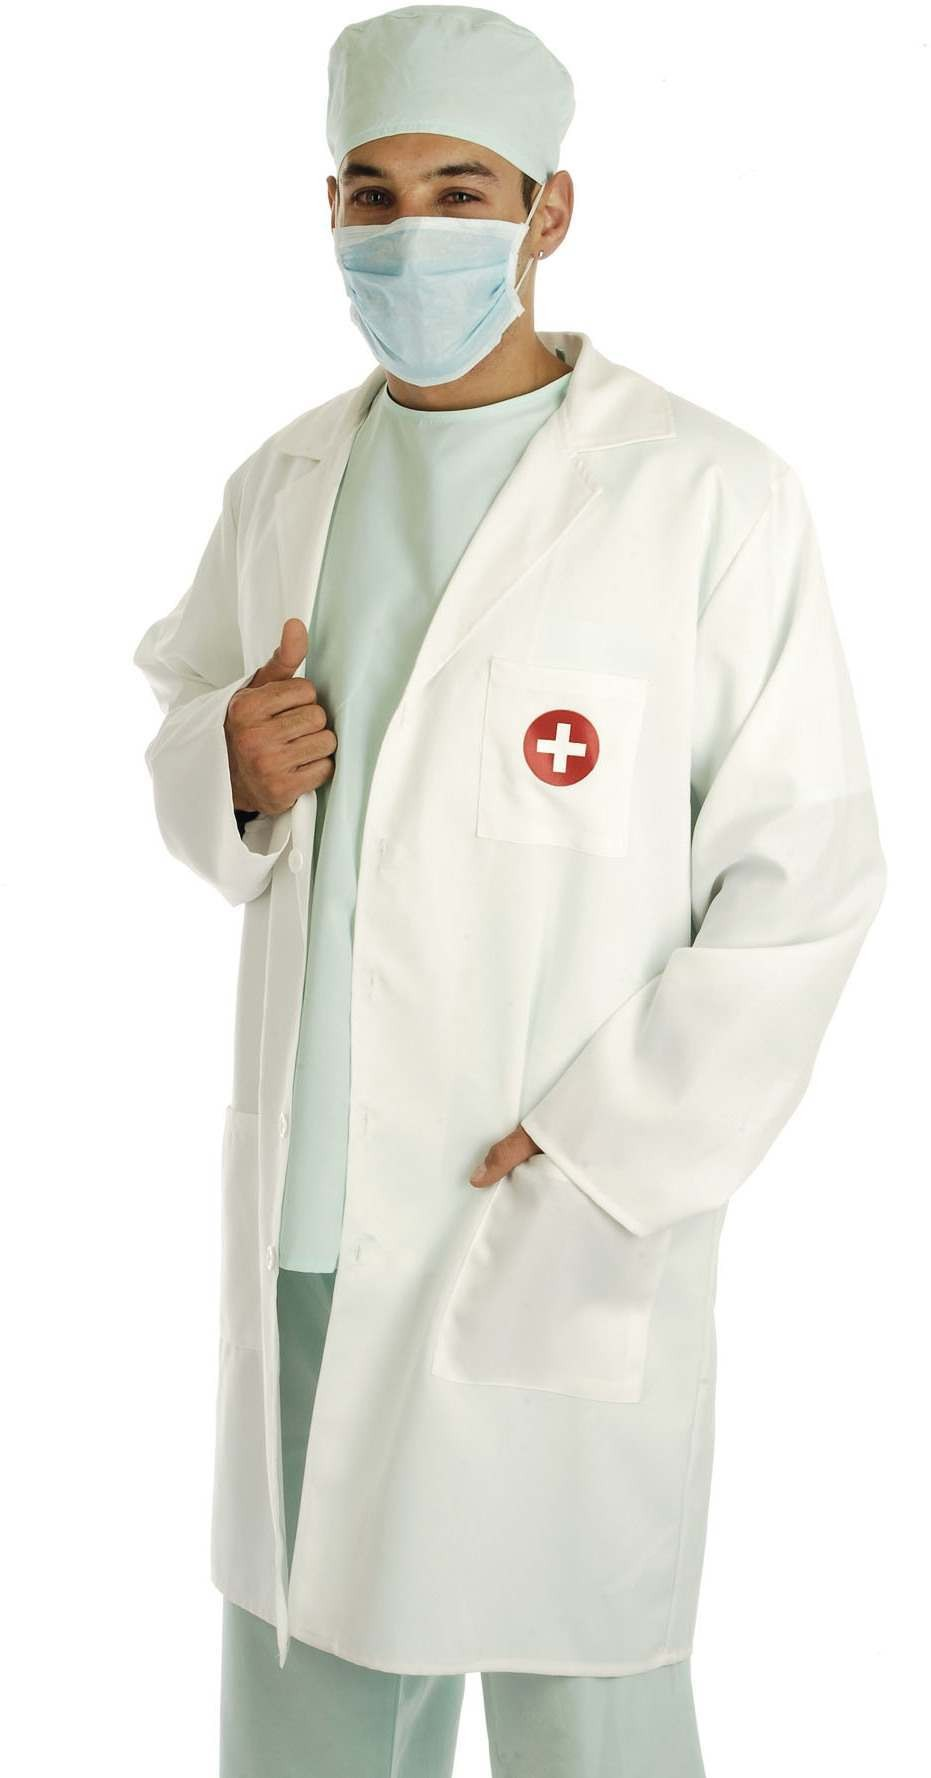 Dr Ts Tickle Fancy Dress Costume Mens (Doctors/Nurses)